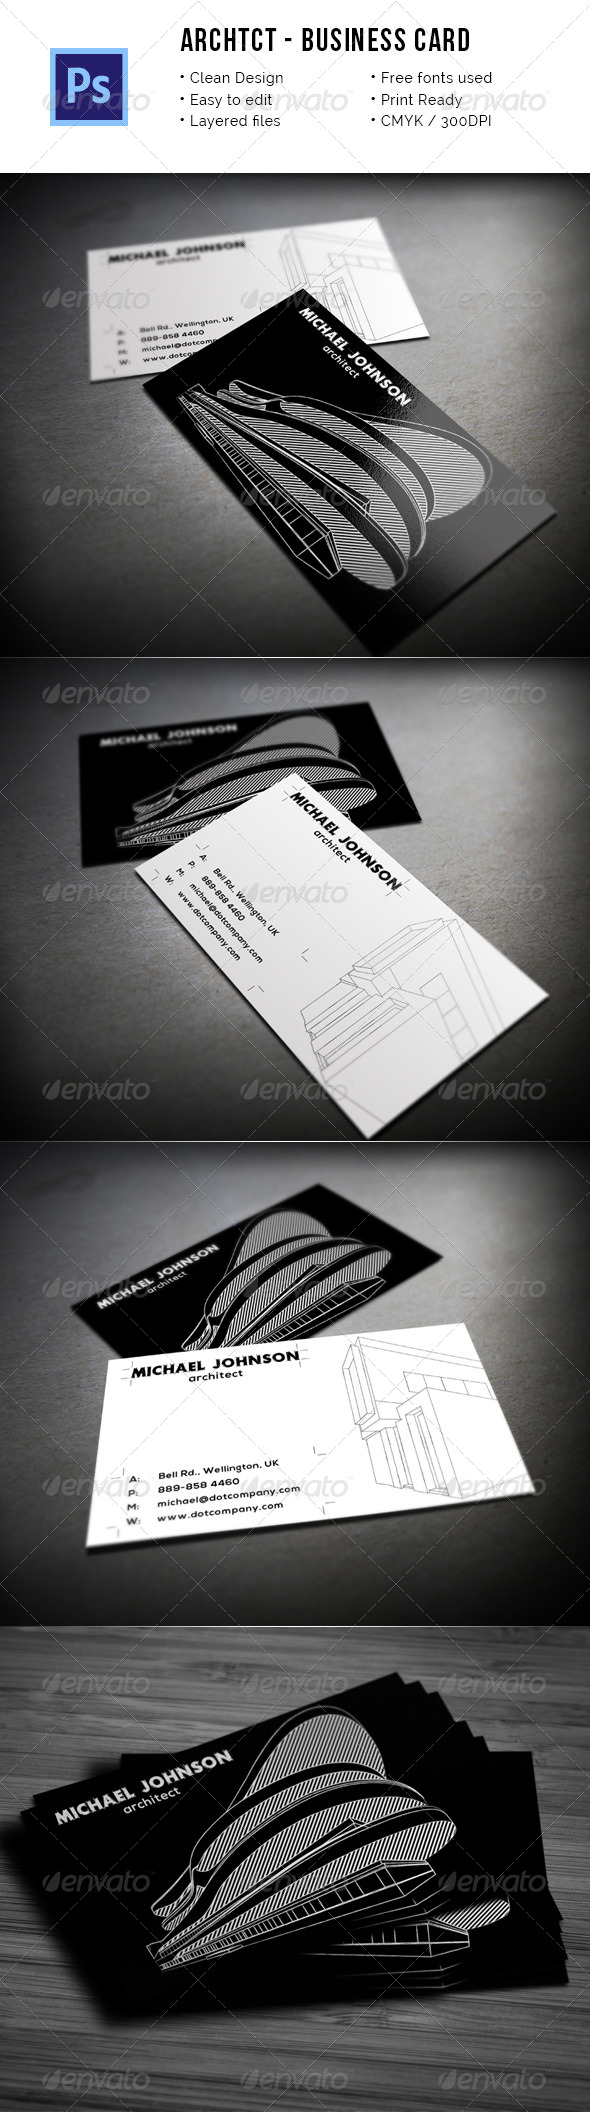 Industry Specific Business Card Templates from GraphicRiver (Page 29)